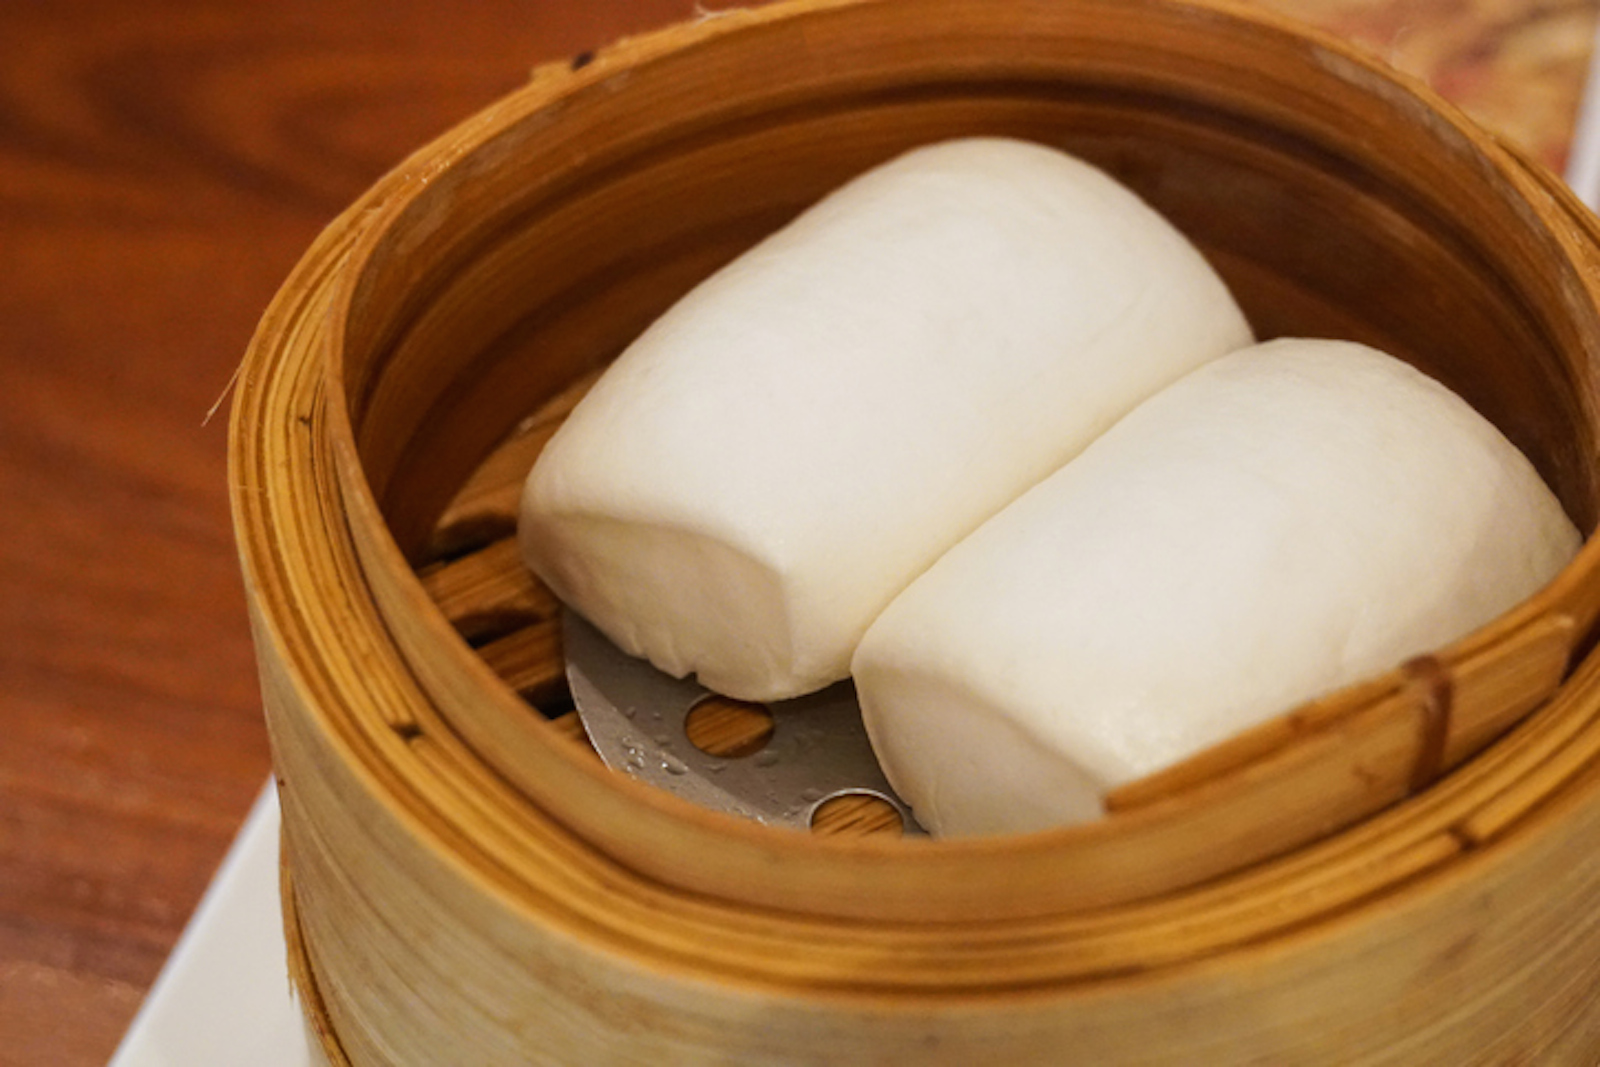 How to prepare the mantou, the Chinese steamed buns